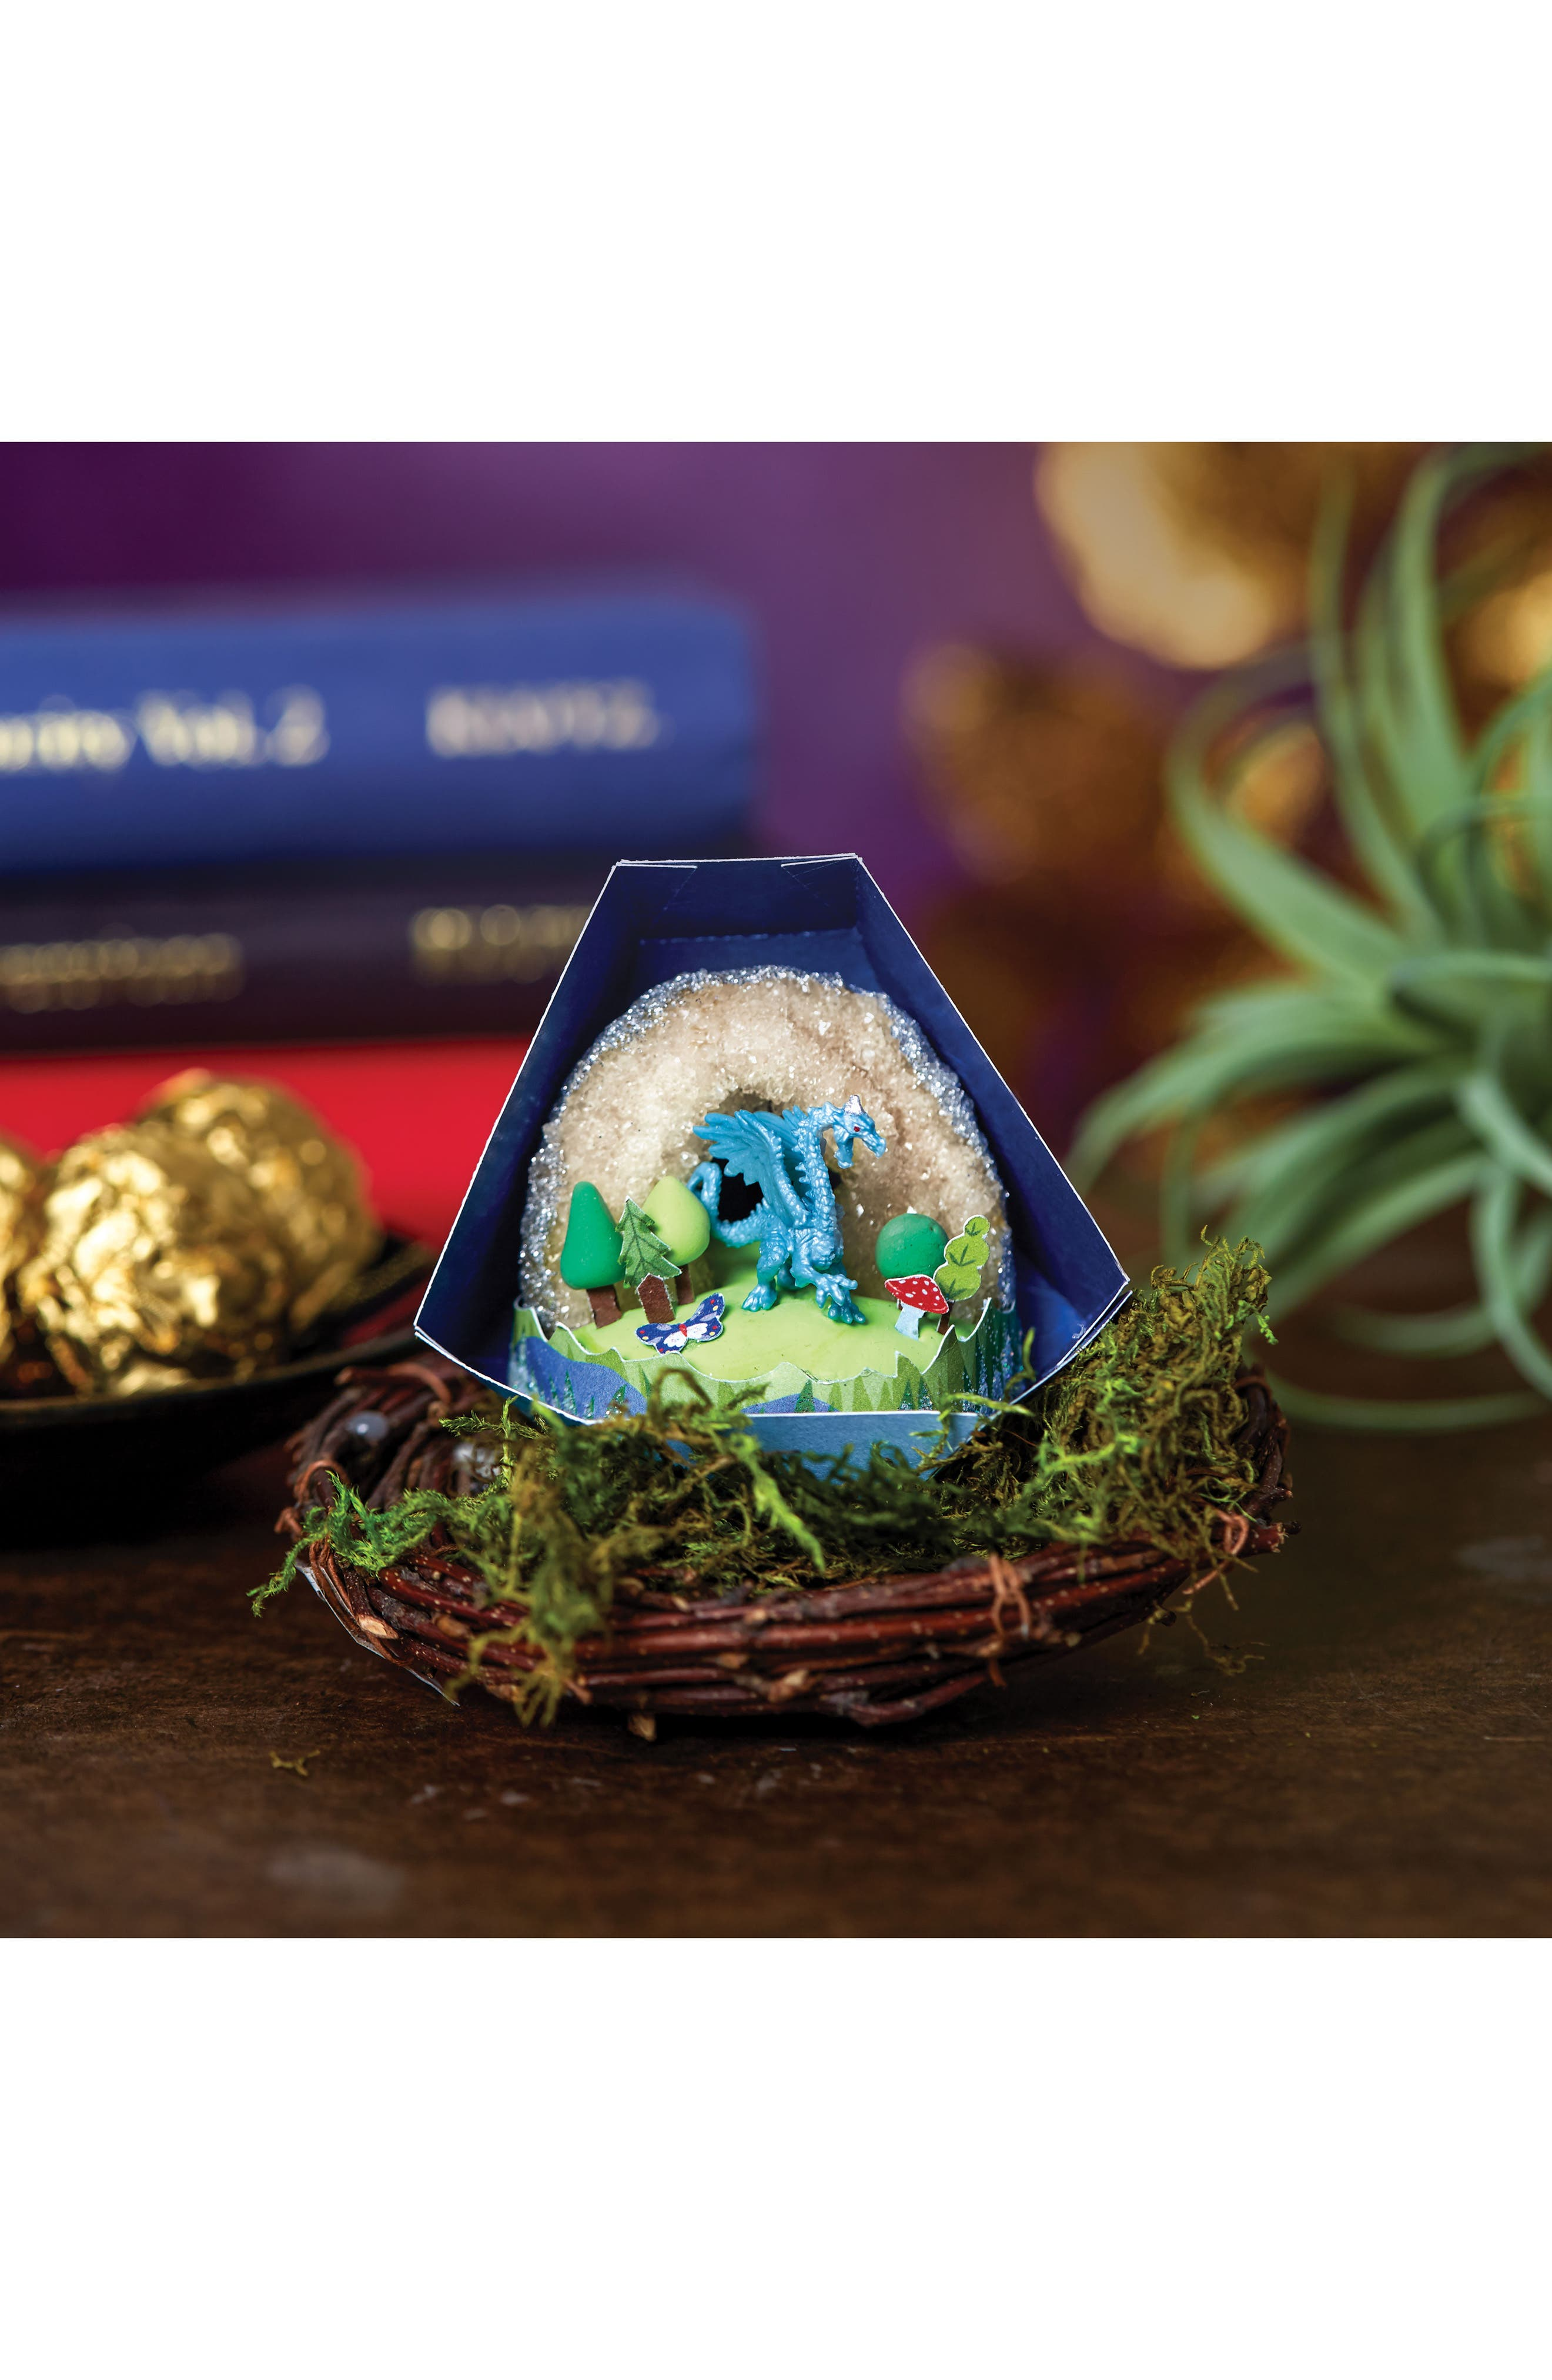 Grow Your Own Crystal Mini Worlds Kit,                             Alternate thumbnail 14, color,                             500